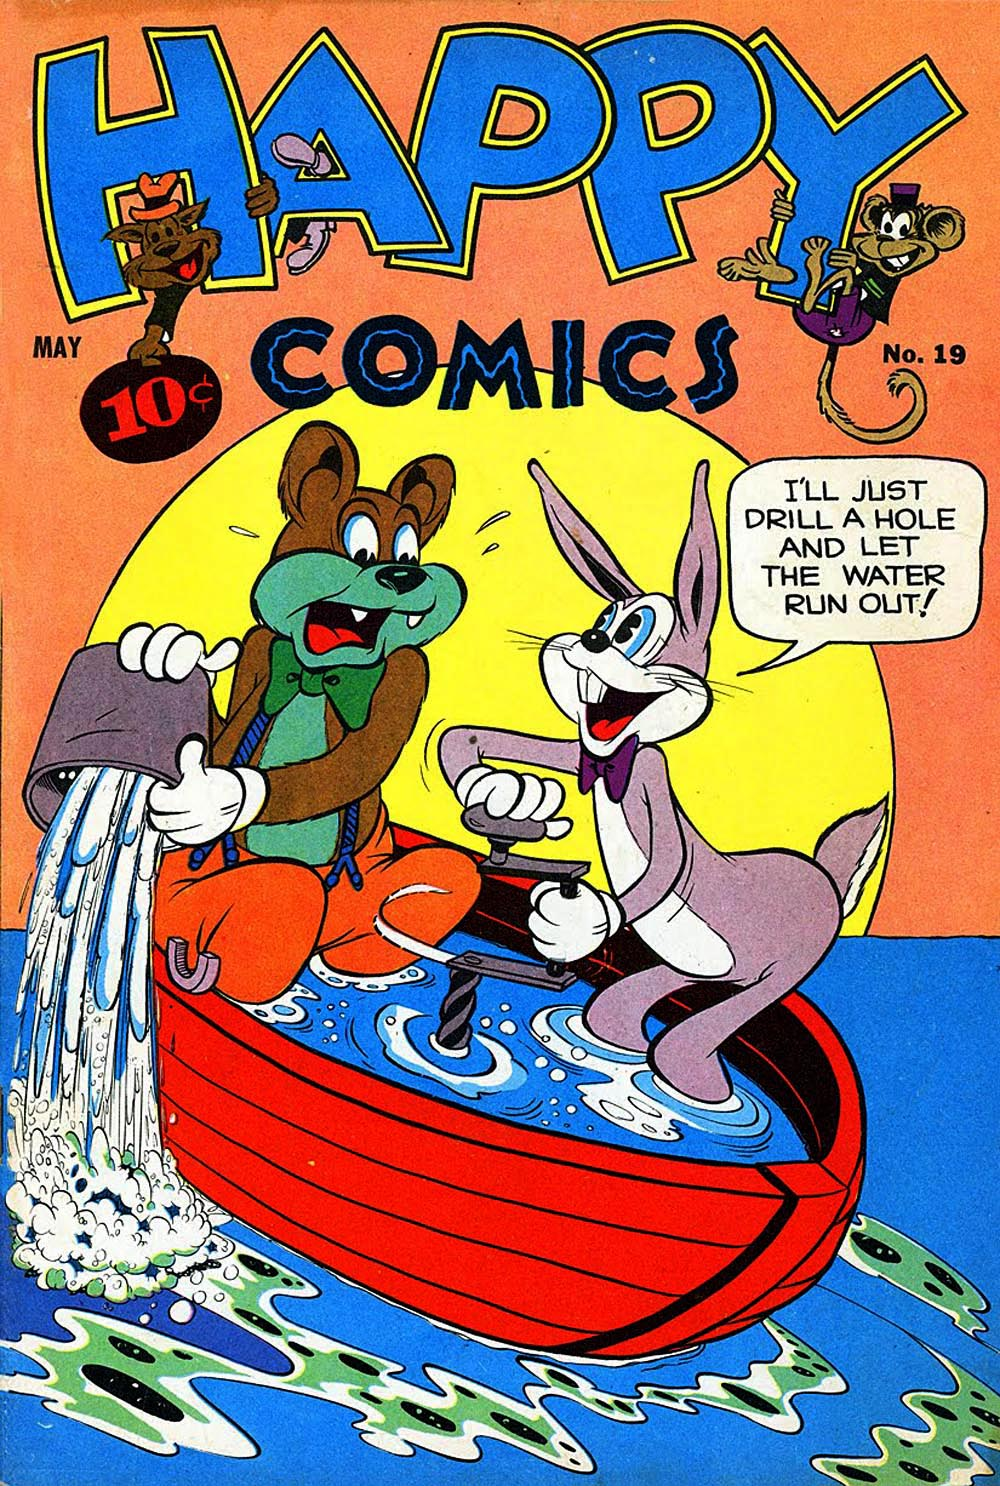 Inbetweens Funny Animal Comic Book Covers  AnimationResourcesorg  Serving the Online